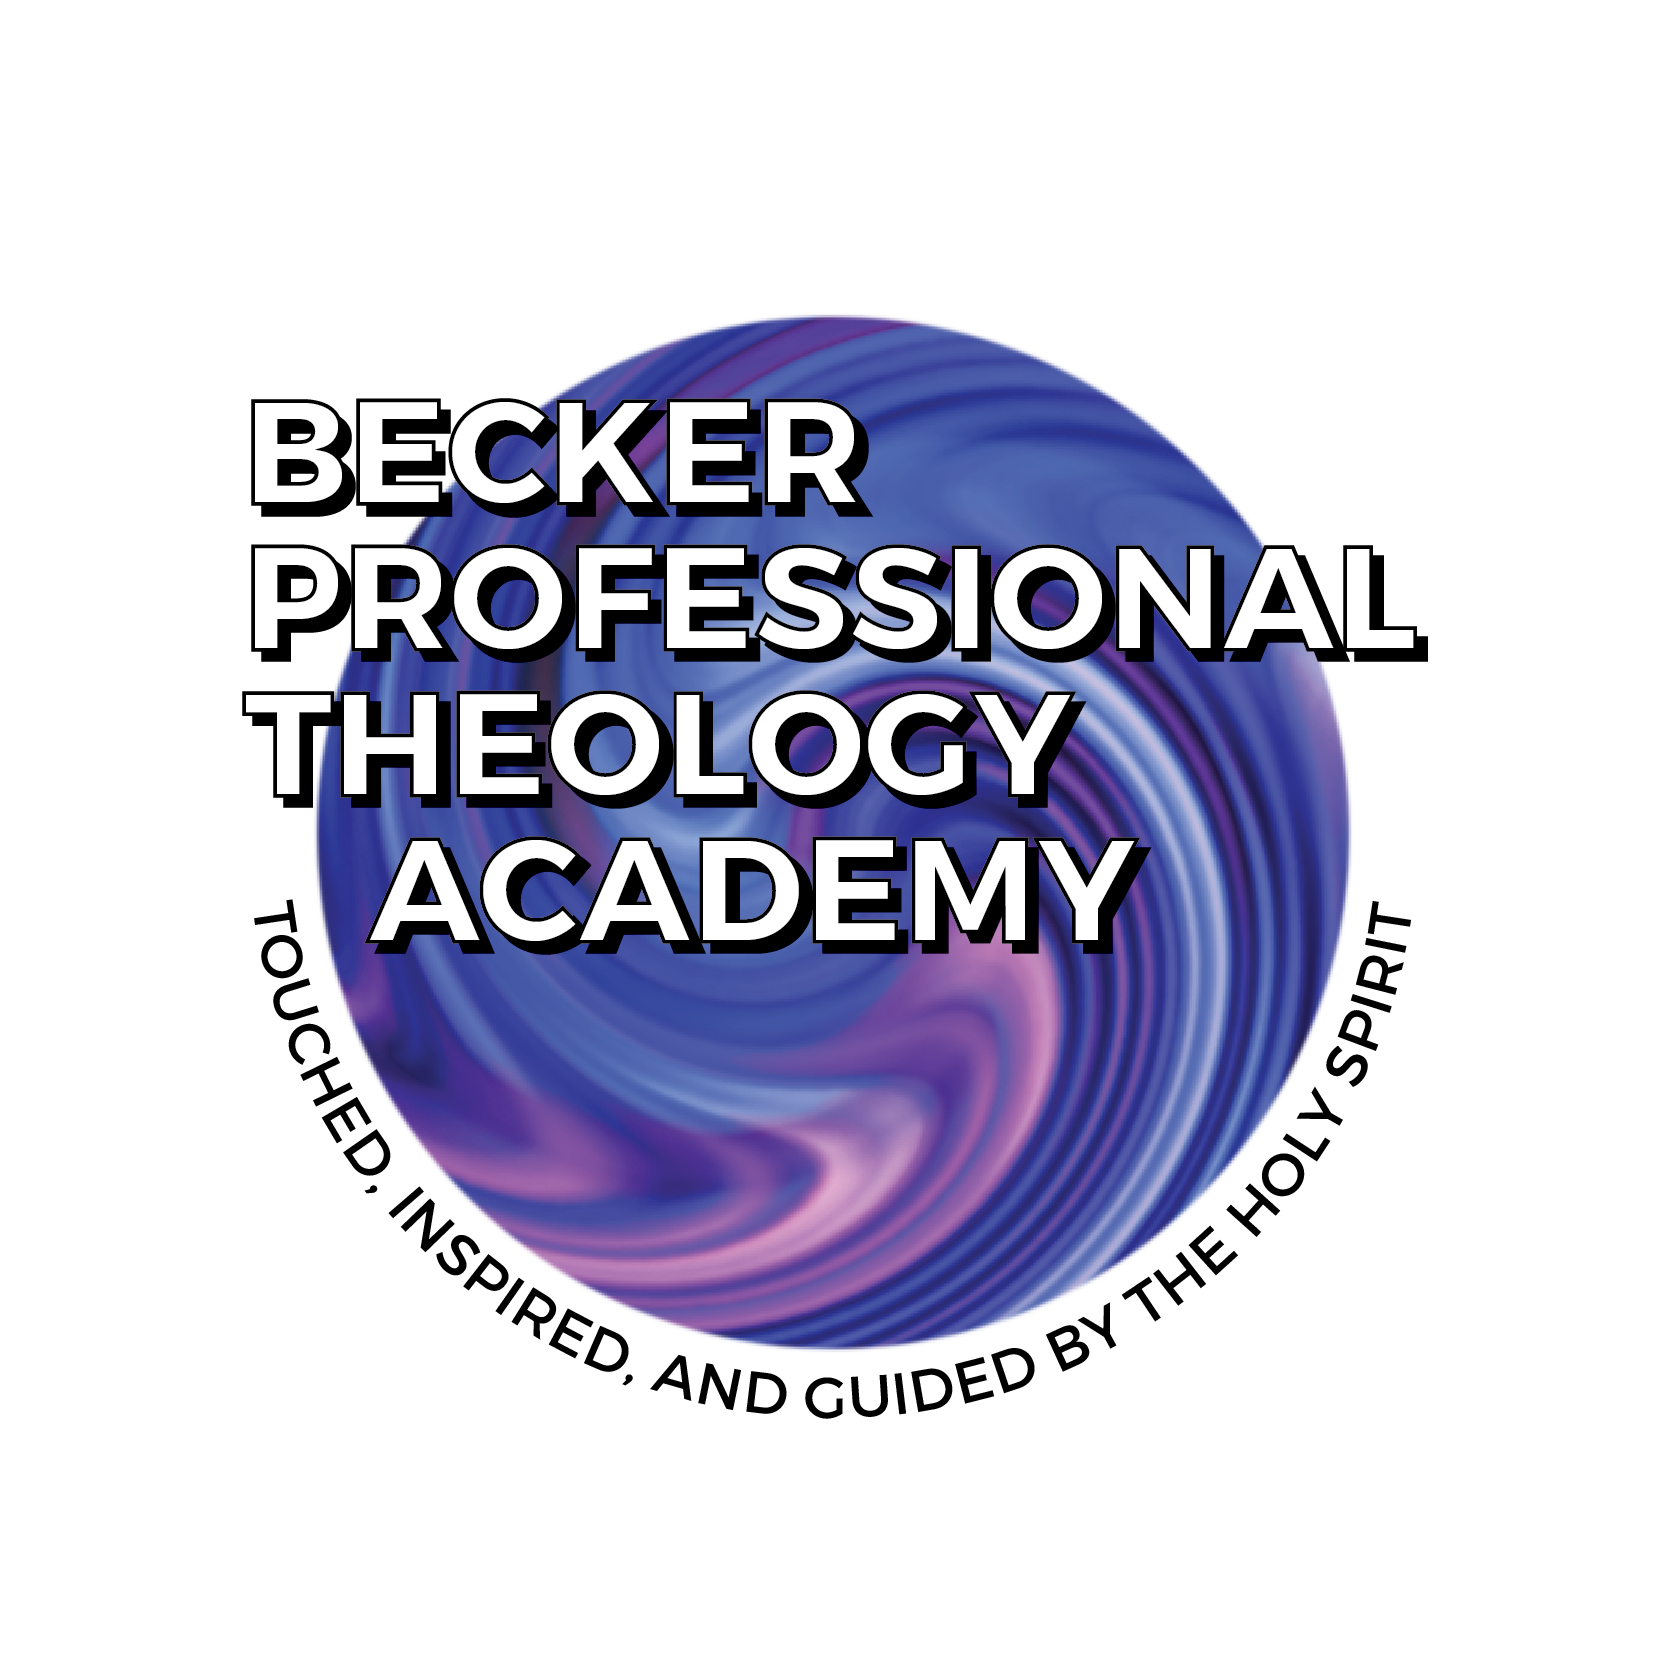 The Origins of Becker Bible Ministries, Inc. and Becker Professional Theology Academy